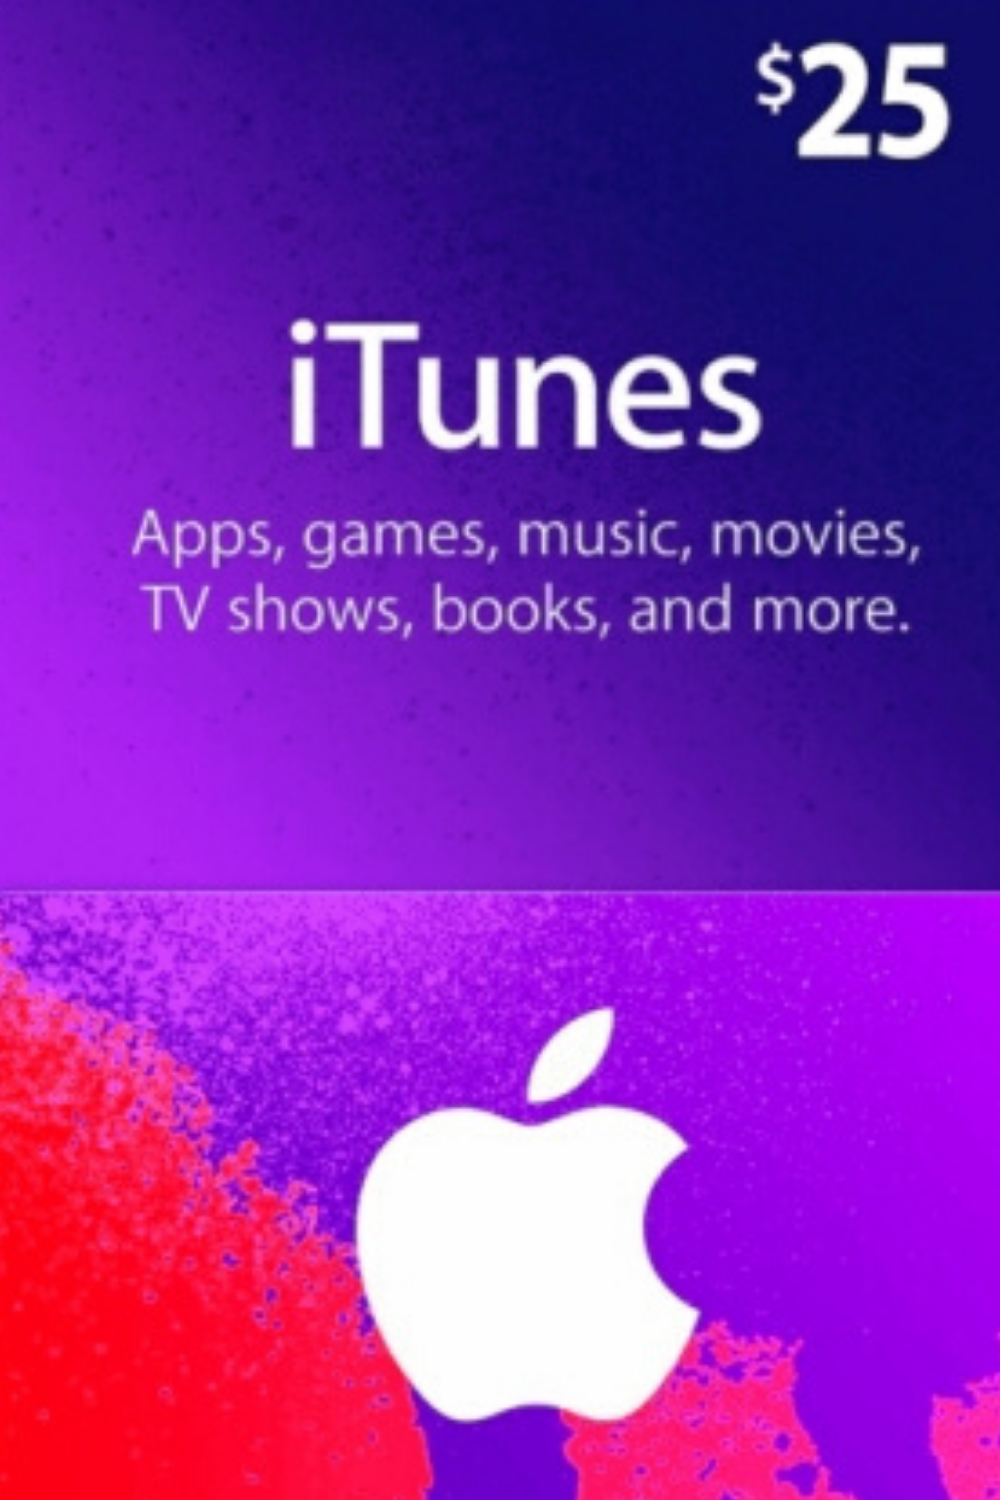 Itunes Free Gift Card 2020 Super Easy 50 Itunes Gift Card Code In 2020 In 2020 Free Itunes Gift Card Itunes Gift Cards Itunes Card